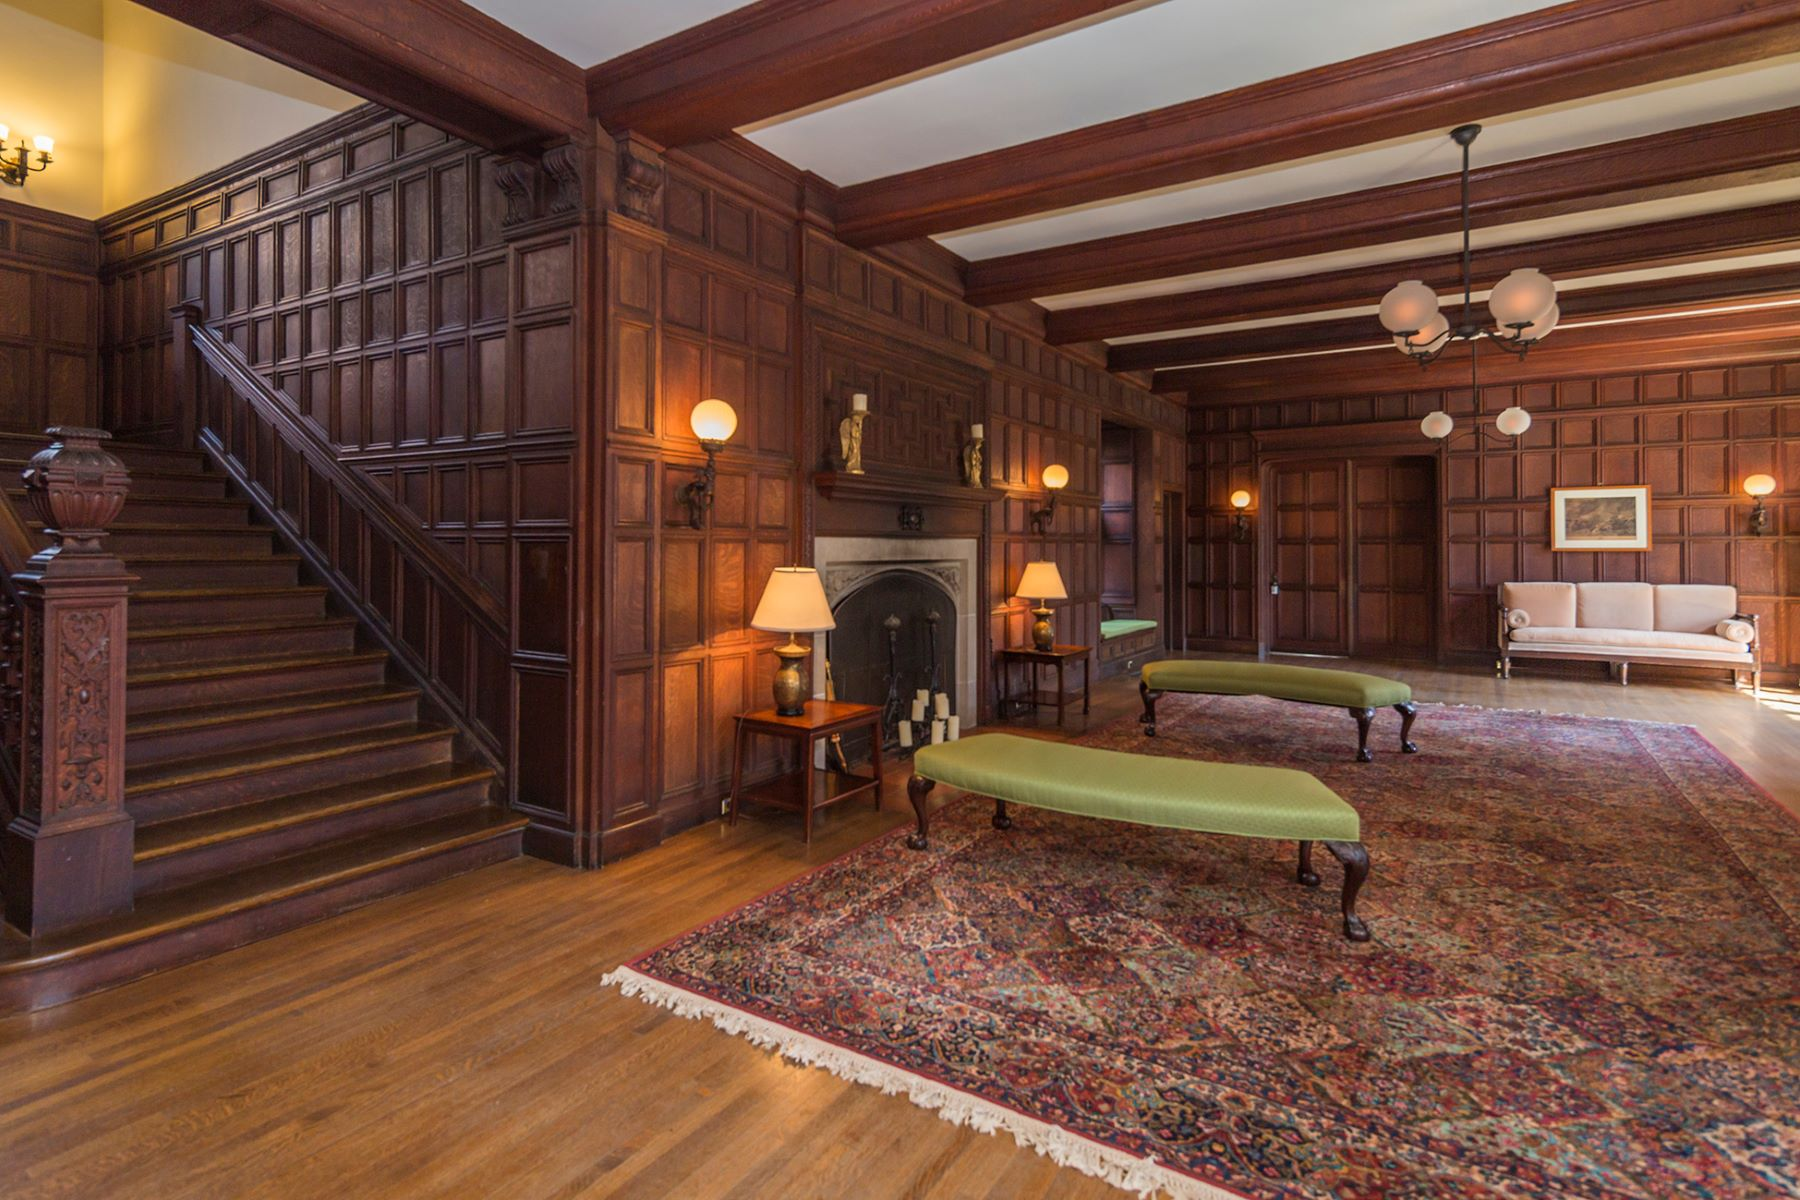 Additional photo for property listing at Great Warmth Amid Turn-of-the-Century Ambiance 2 Constitution Hill East Princeton, New Jersey 08540 États-Unis